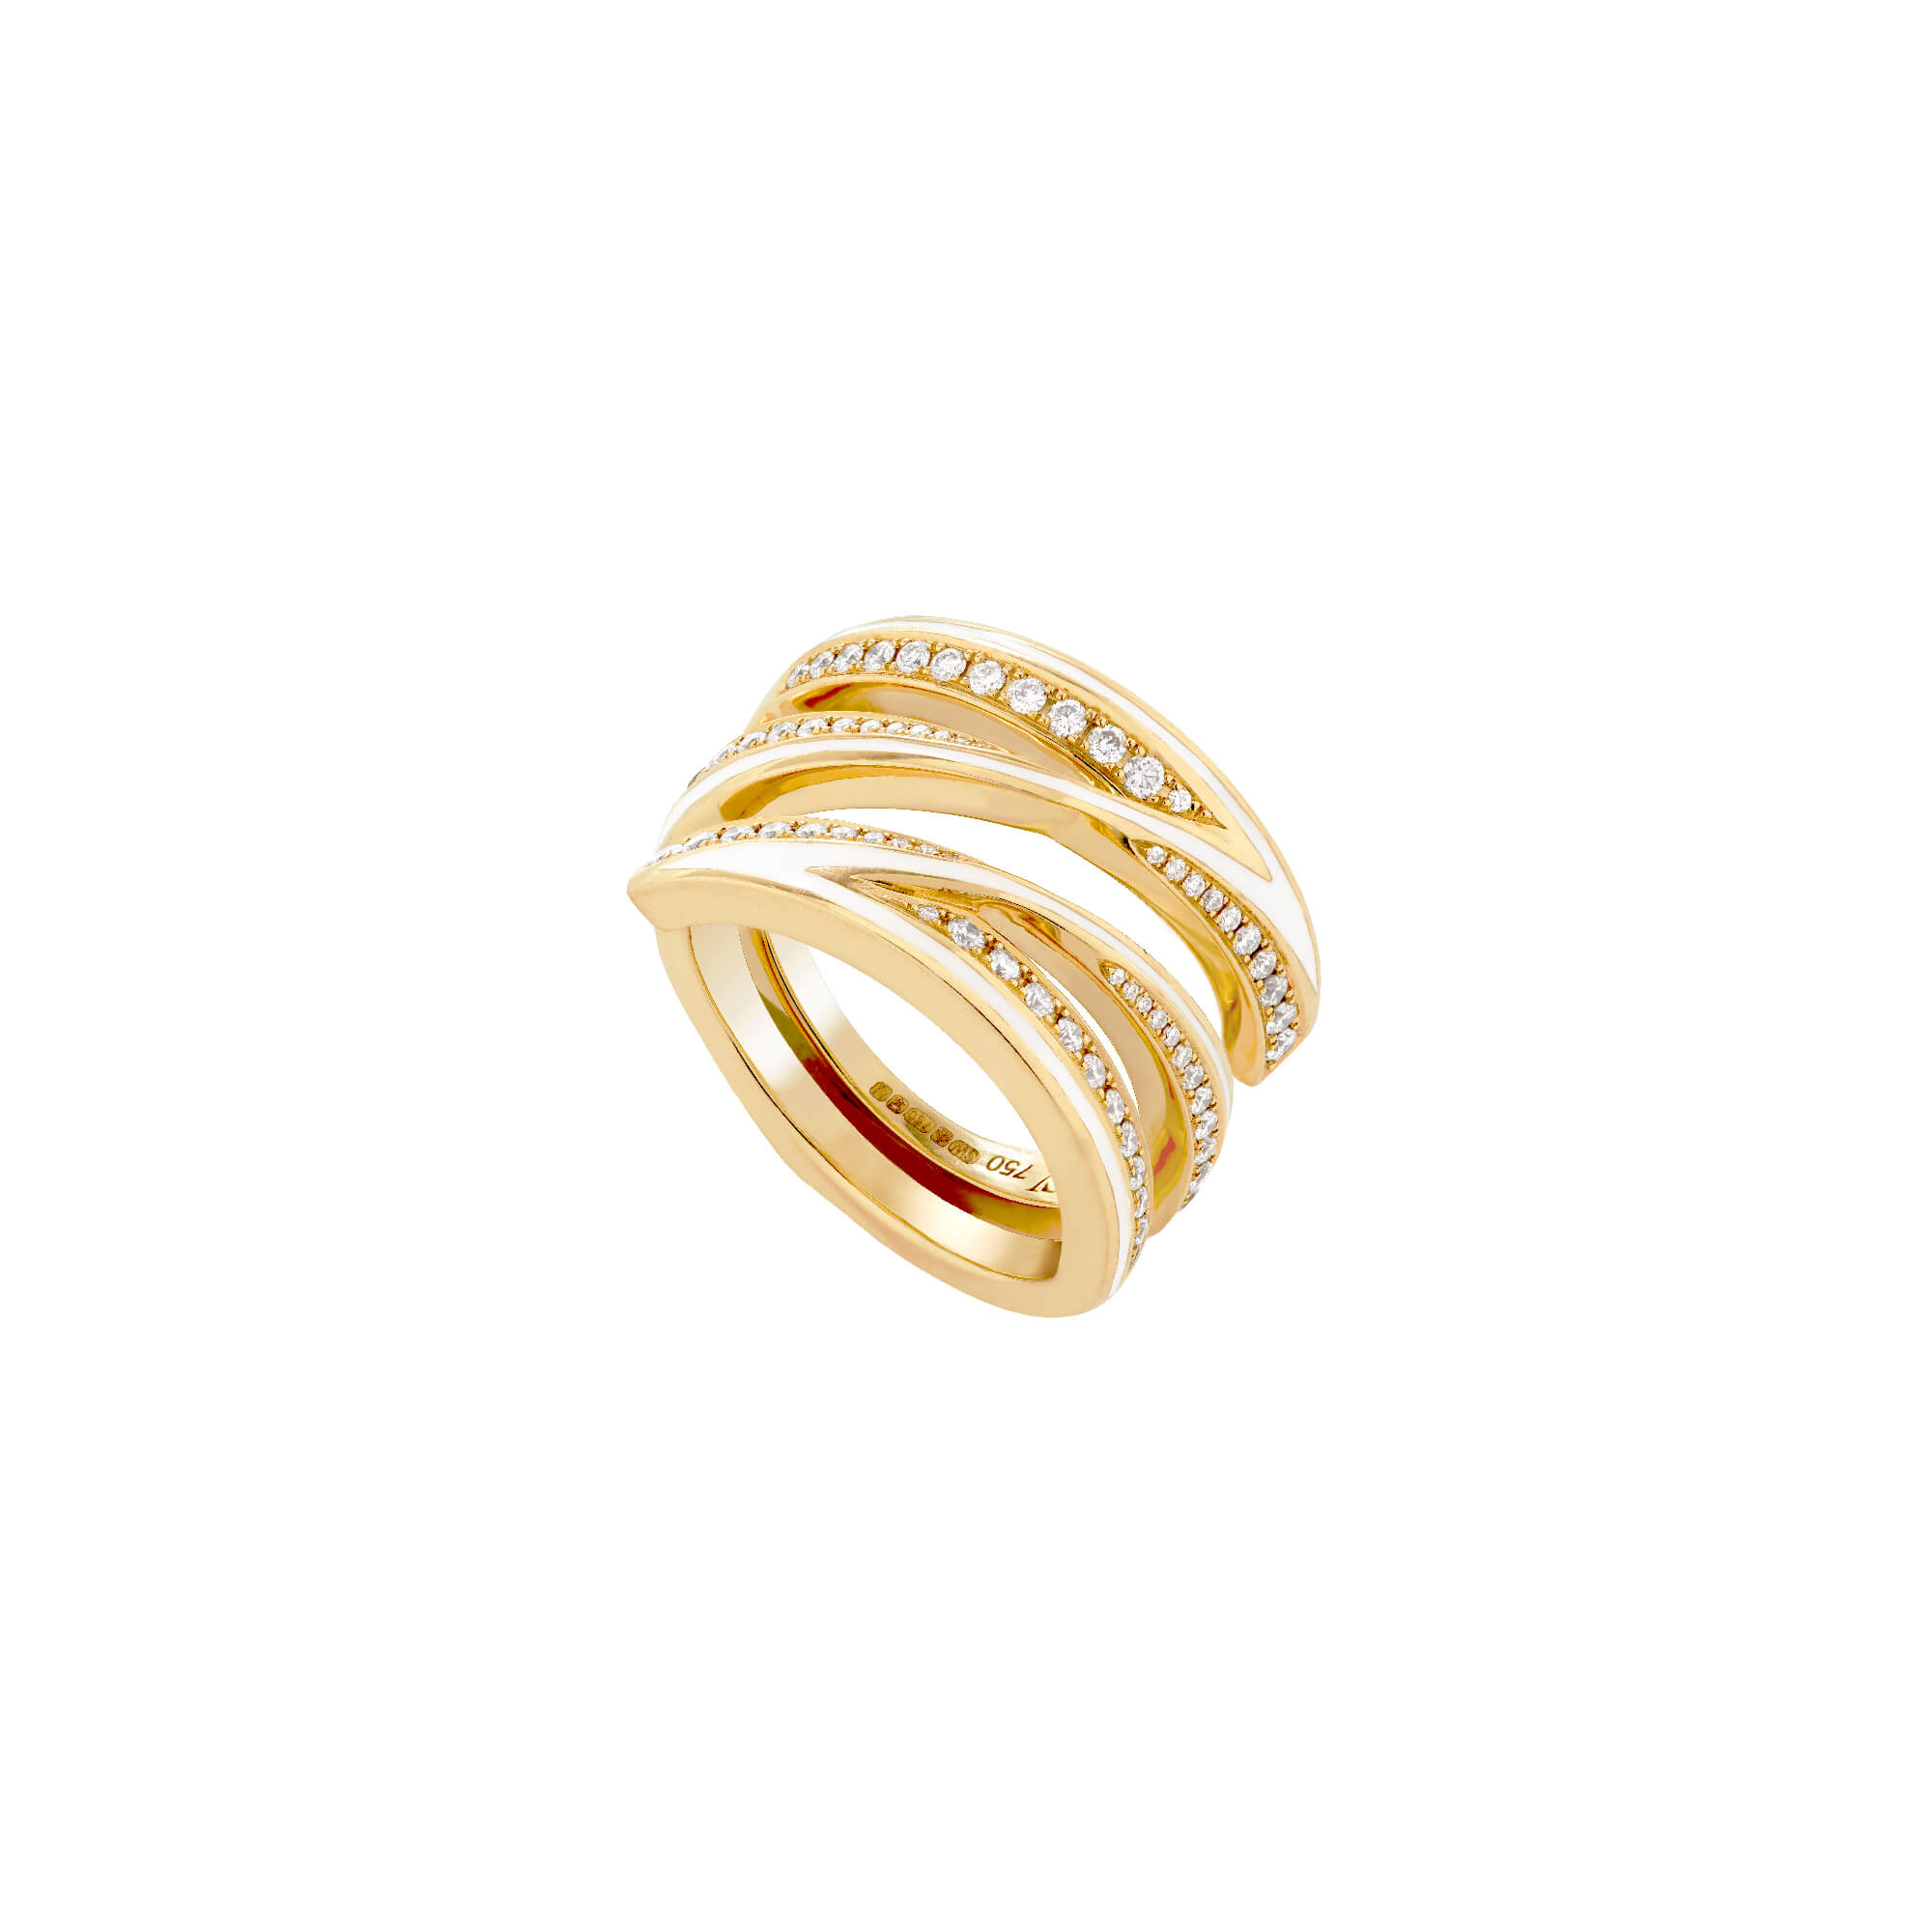 Yellow Gold and White Diamond Infinity Ring | Vertigo